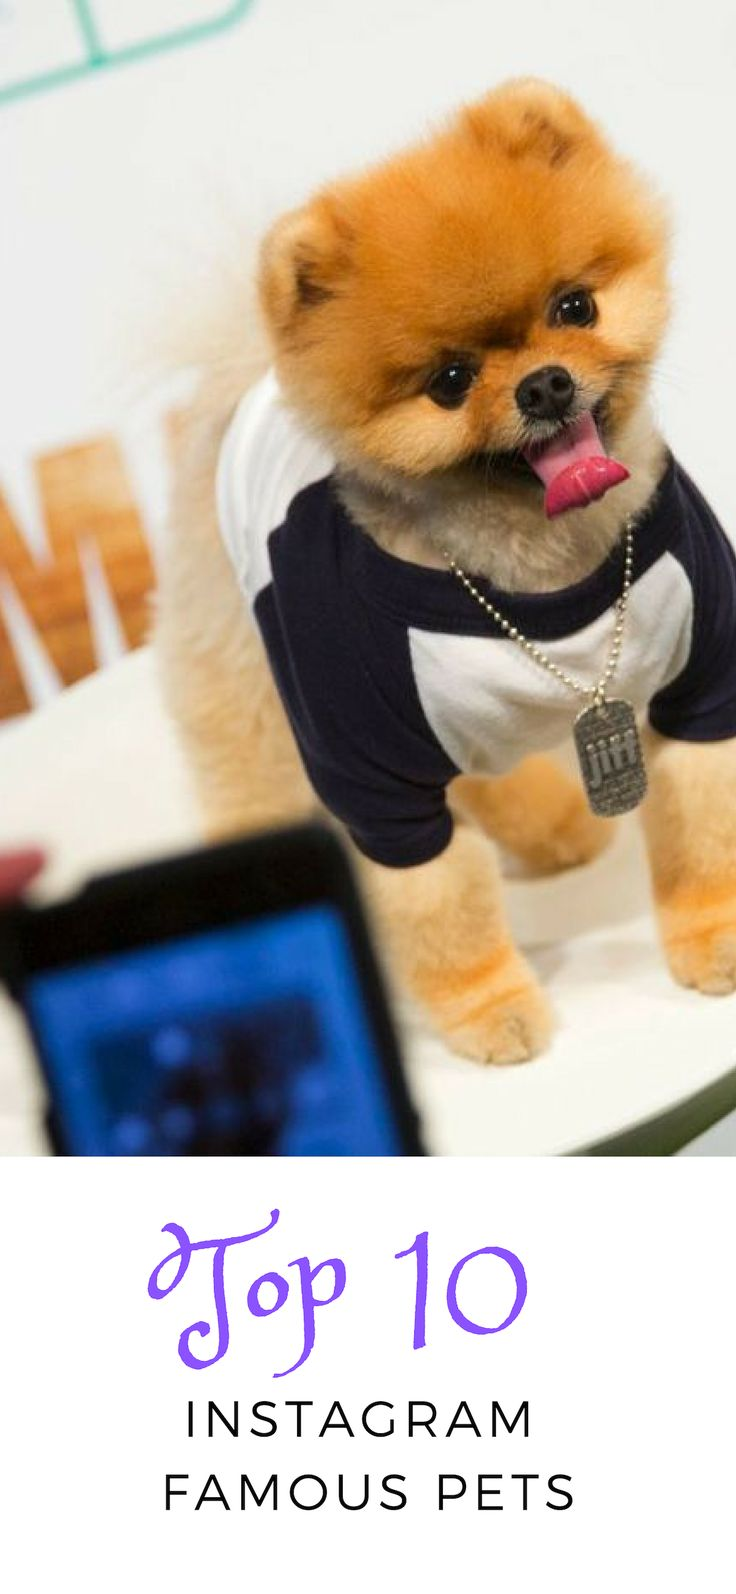 Prime 10 Instagram Well-known Pets